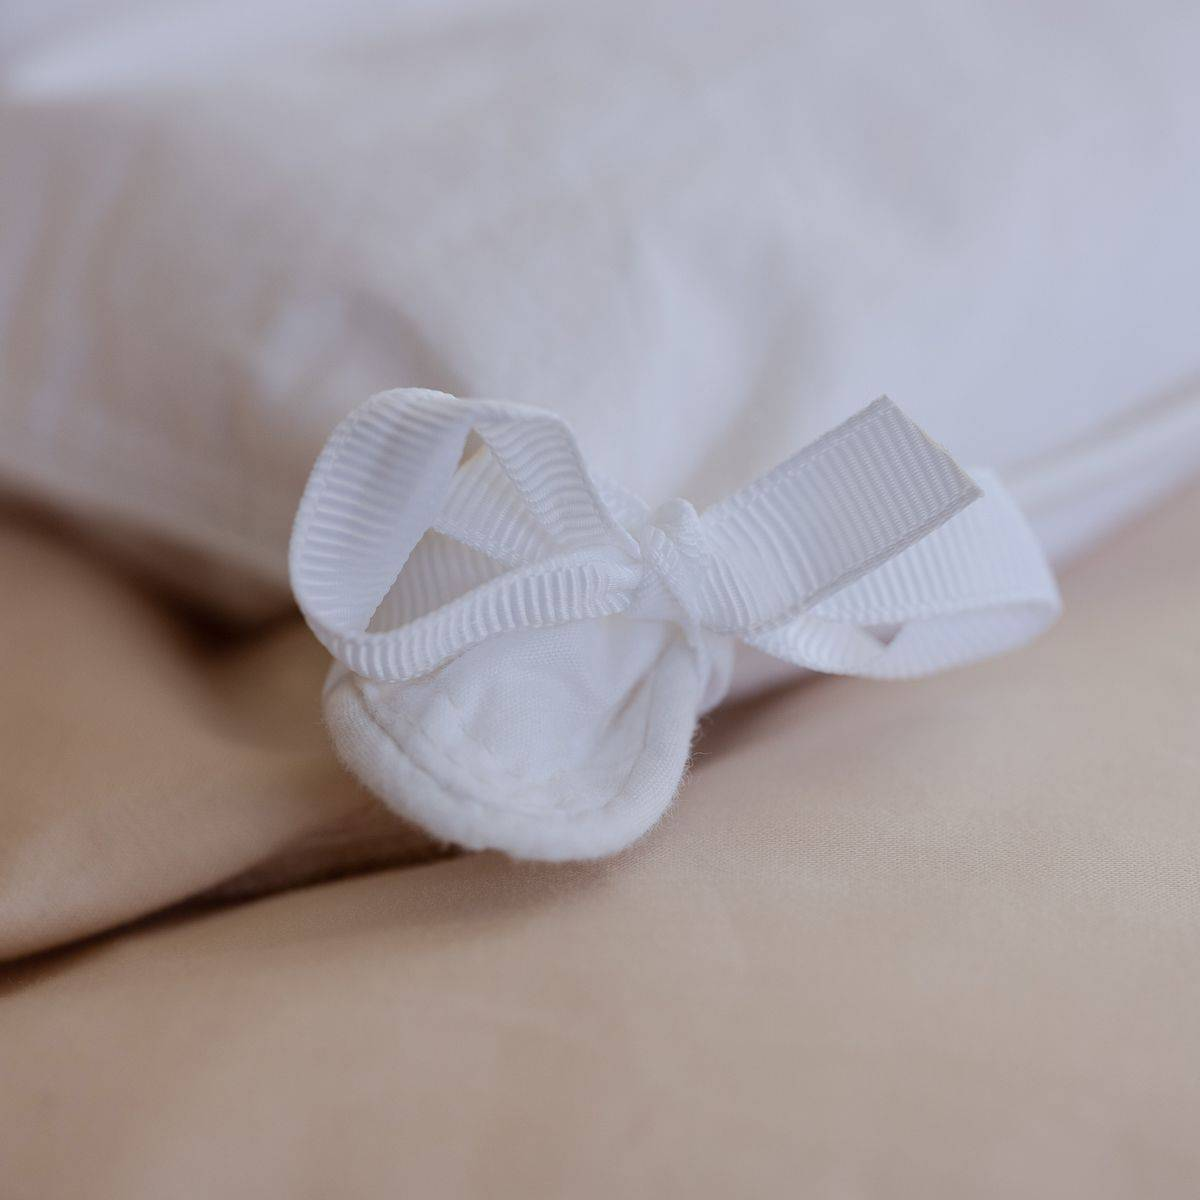 Duvet cover tie for easy securing